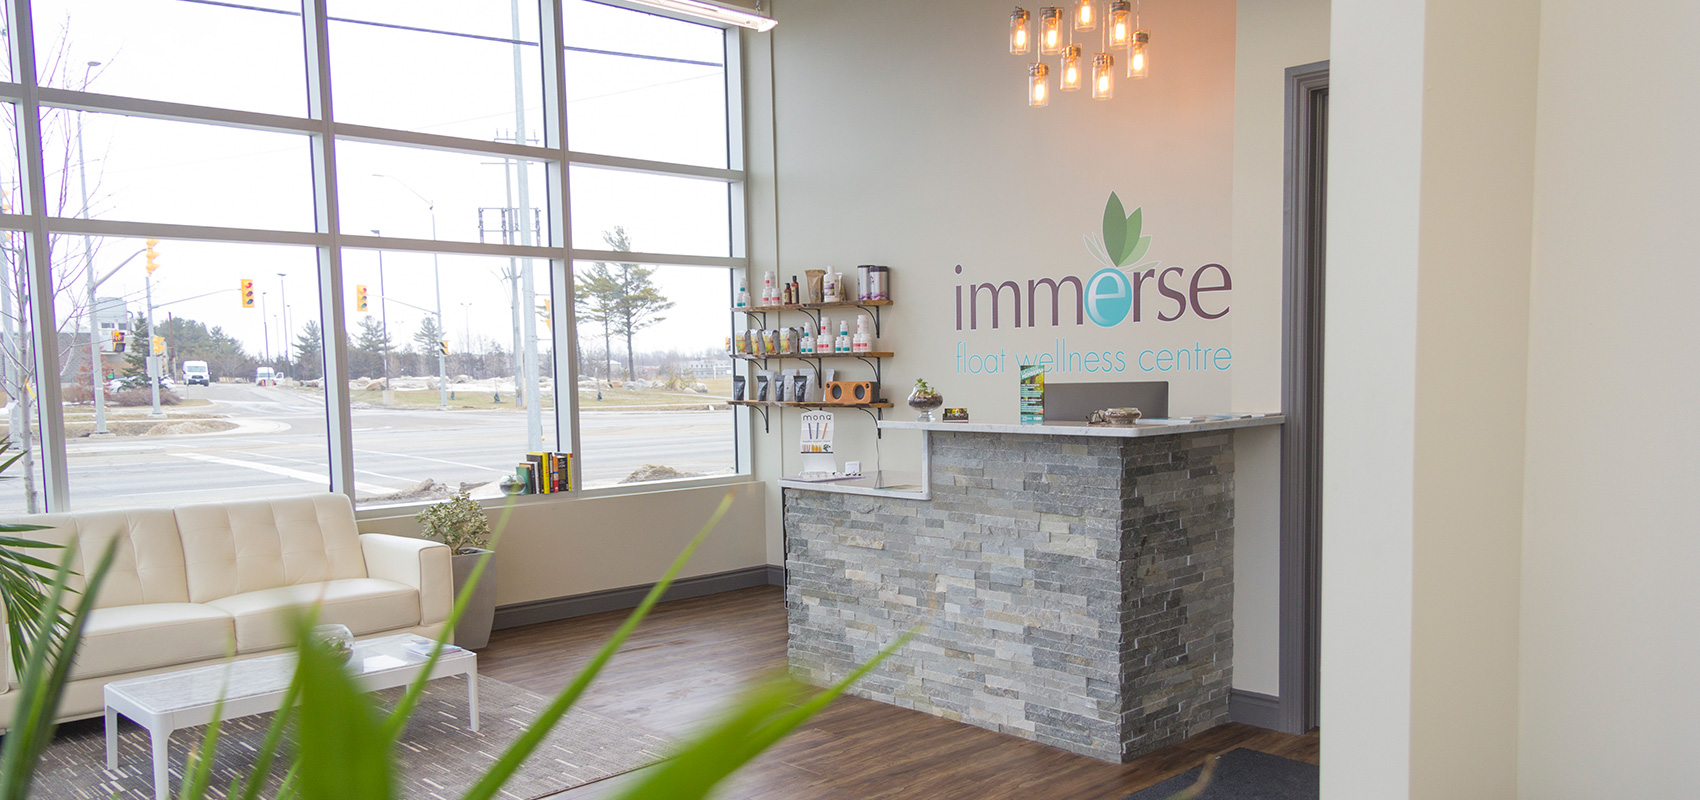 Immerse Spa Interior